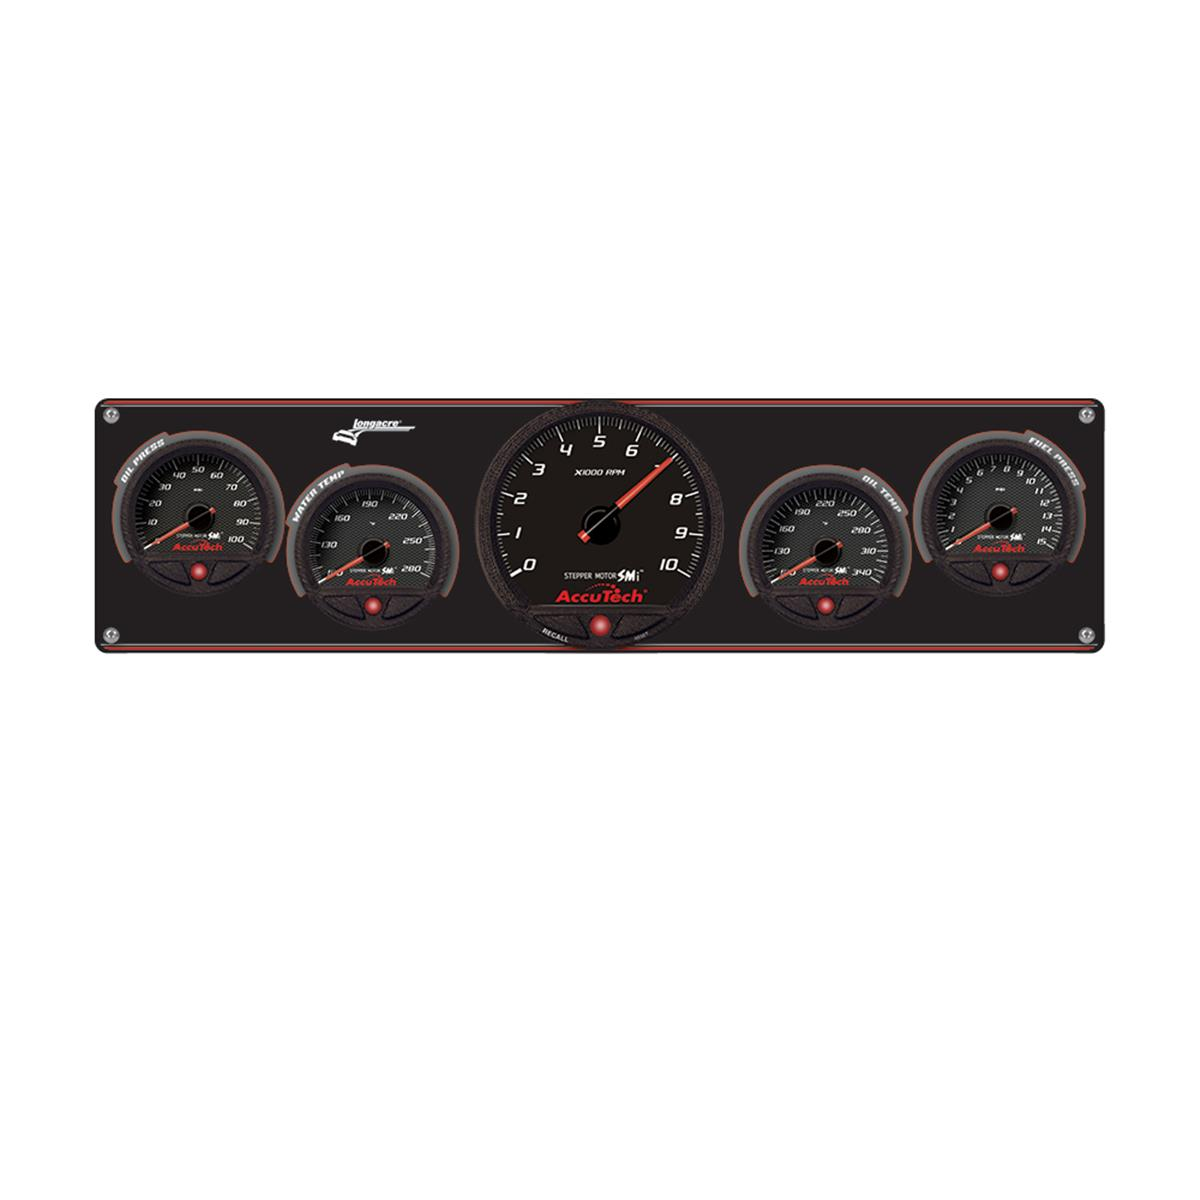 4 Gauge Aluminum Panel with AccuTech™ SMi™ Gauges & Tach - OP,WT,OT,FP